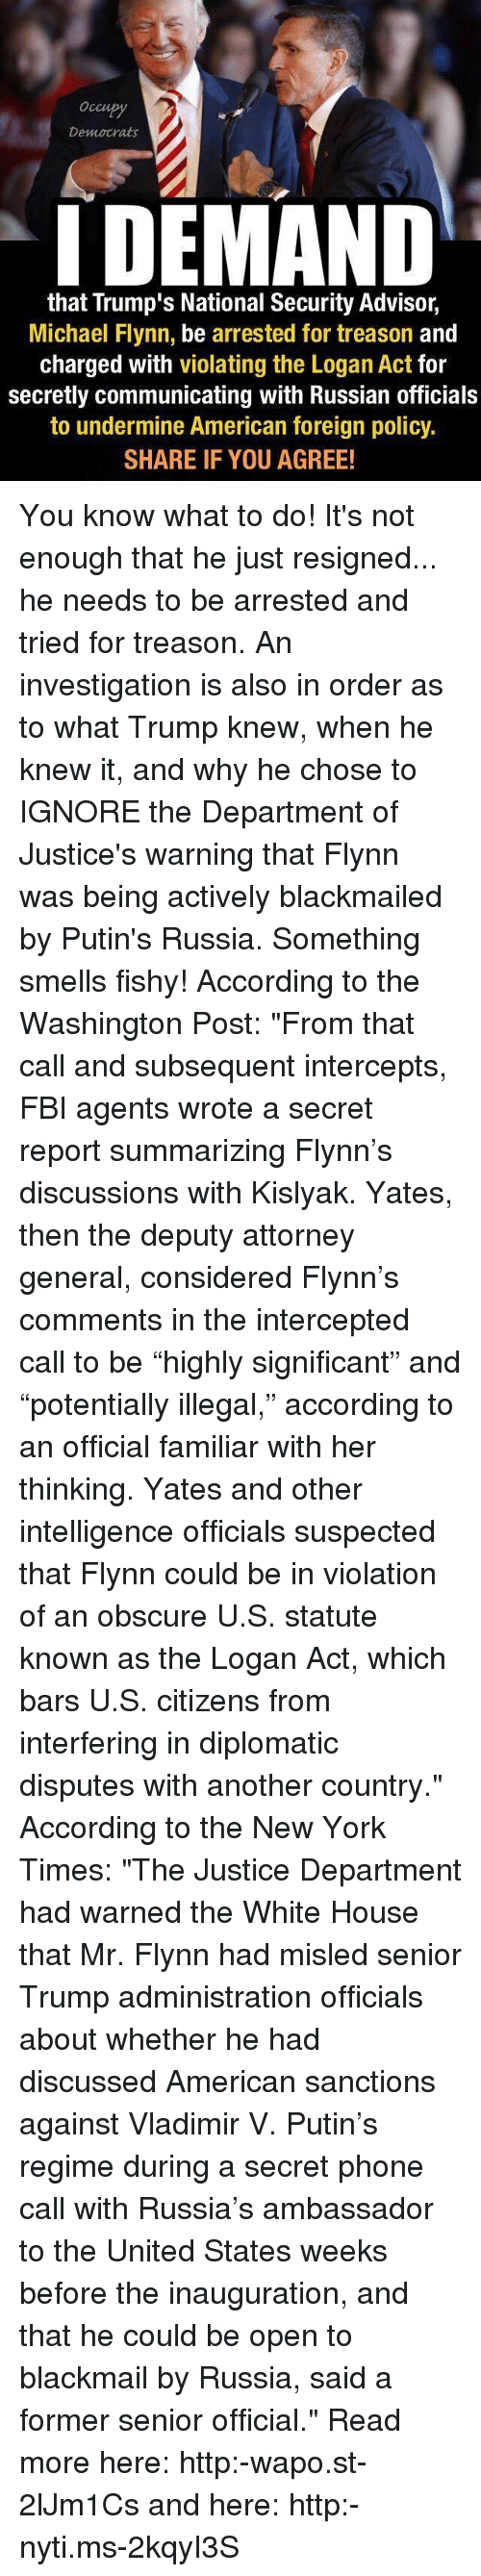 """Fbi, Ignorant, and Memes: Democrats  I DEMAND  that Trump's National Security Advisor,  Michael Flynn, be arrested for treason  and  charged with violating the Logan Act for  secretly communicating with Russian officials  to undermine American foreign policy.  SHARE IF YOU AGREE! You know what to do! It's not enough that he just resigned... he needs to be arrested and tried for treason. An investigation is also in order as to what Trump knew, when he knew it, and why he chose to IGNORE the Department of Justice's warning that Flynn was being actively blackmailed by Putin's Russia. Something smells fishy! According to the Washington Post: """"From that call and subsequent intercepts, FBI agents wrote a secret report summarizing Flynn's discussions with Kislyak. Yates, then the deputy attorney general, considered Flynn's comments in the intercepted call to be """"highly significant"""" and """"potentially illegal,"""" according to an official familiar with her thinking. Yates and other intelligence officials suspected that Flynn could be in violation of an obscure U.S. statute known as the Logan Act, which bars U.S. citizens from interfering in diplomatic disputes with another country."""" According to the New York Times: """"The Justice Department had warned the White House that Mr. Flynn had misled senior Trump administration officials about whether he had discussed American sanctions against Vladimir V. Putin's regime during a secret phone call with Russia's ambassador to the United States weeks before the inauguration, and that he could be open to blackmail by Russia, said a former senior official."""" Read more here: http:-wapo.st-2lJm1Cs and here: http:-nyti.ms-2kqyI3S"""